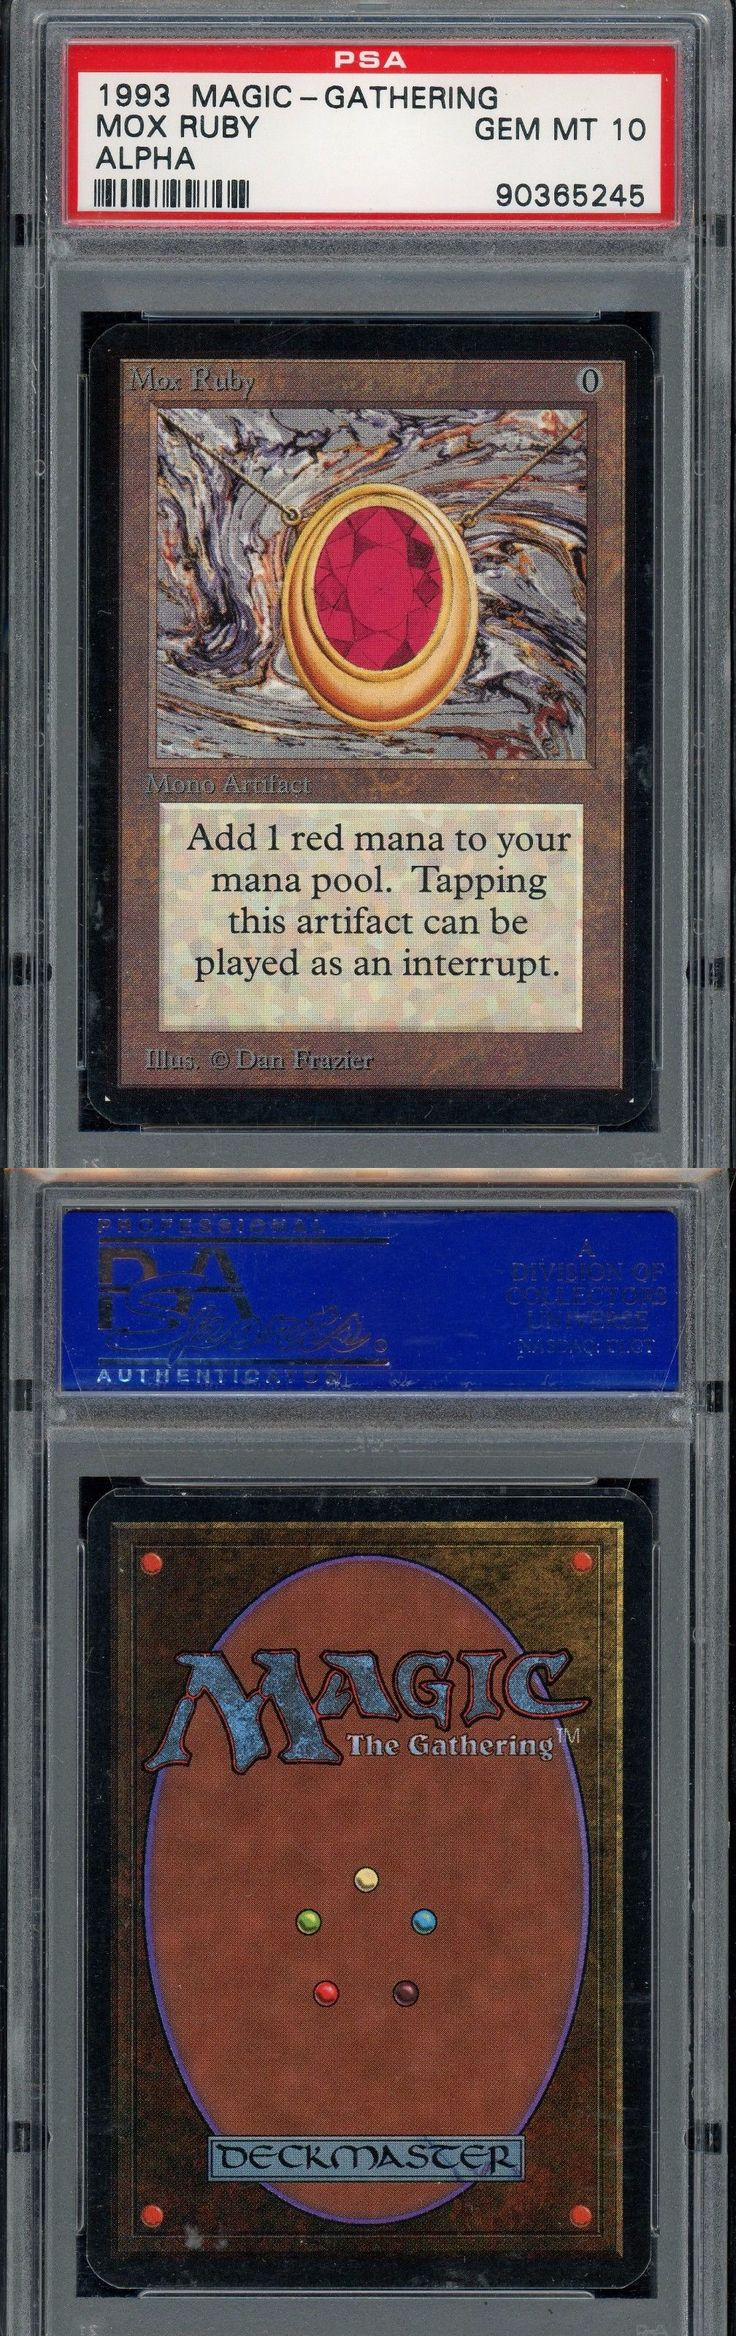 MTG Individual Cards 38292: Psa 10 - Mox Ruby - Alpha - Gem Mint - 1993 Mtg Magic - Bgs 9.5 Quality -> BUY IT NOW ONLY: $13999.99 on eBay!